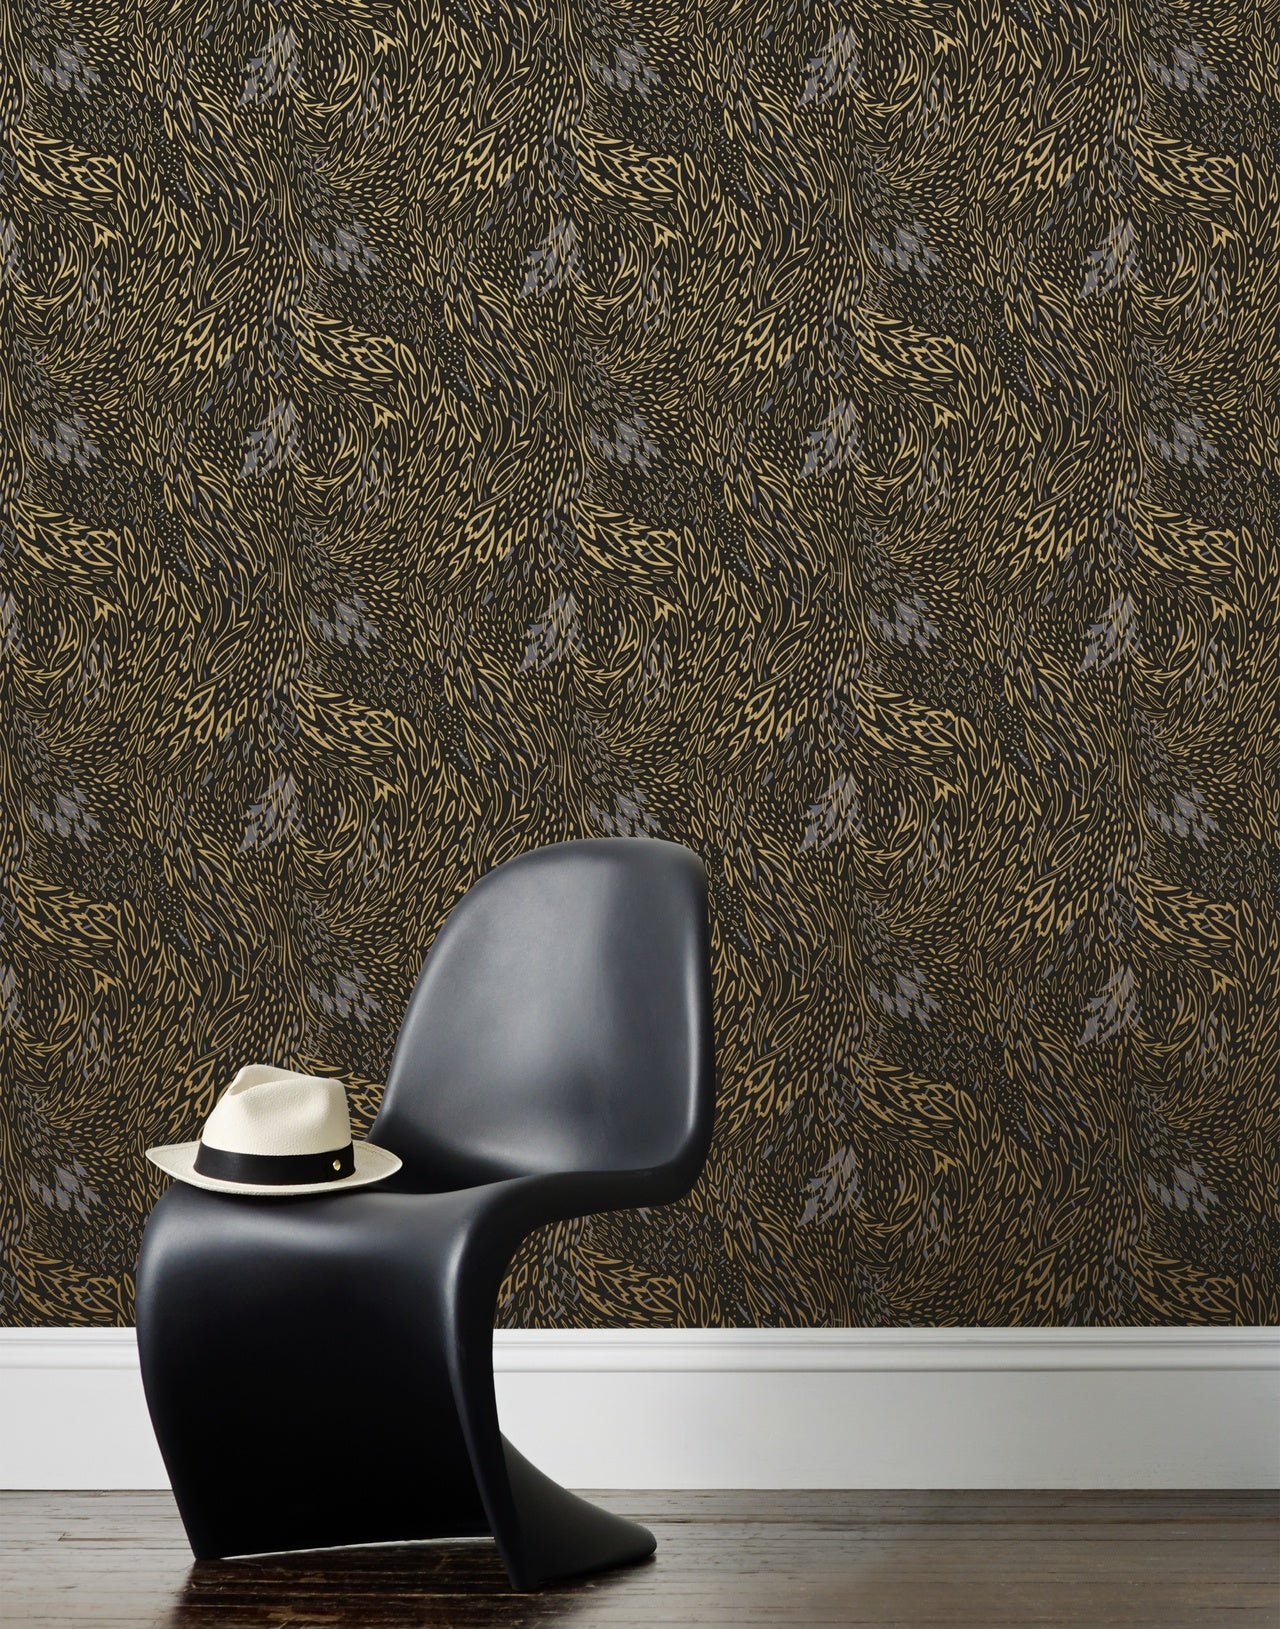 Forest Floor wallpaper in Ebony by Pattern Players for Hygge & West